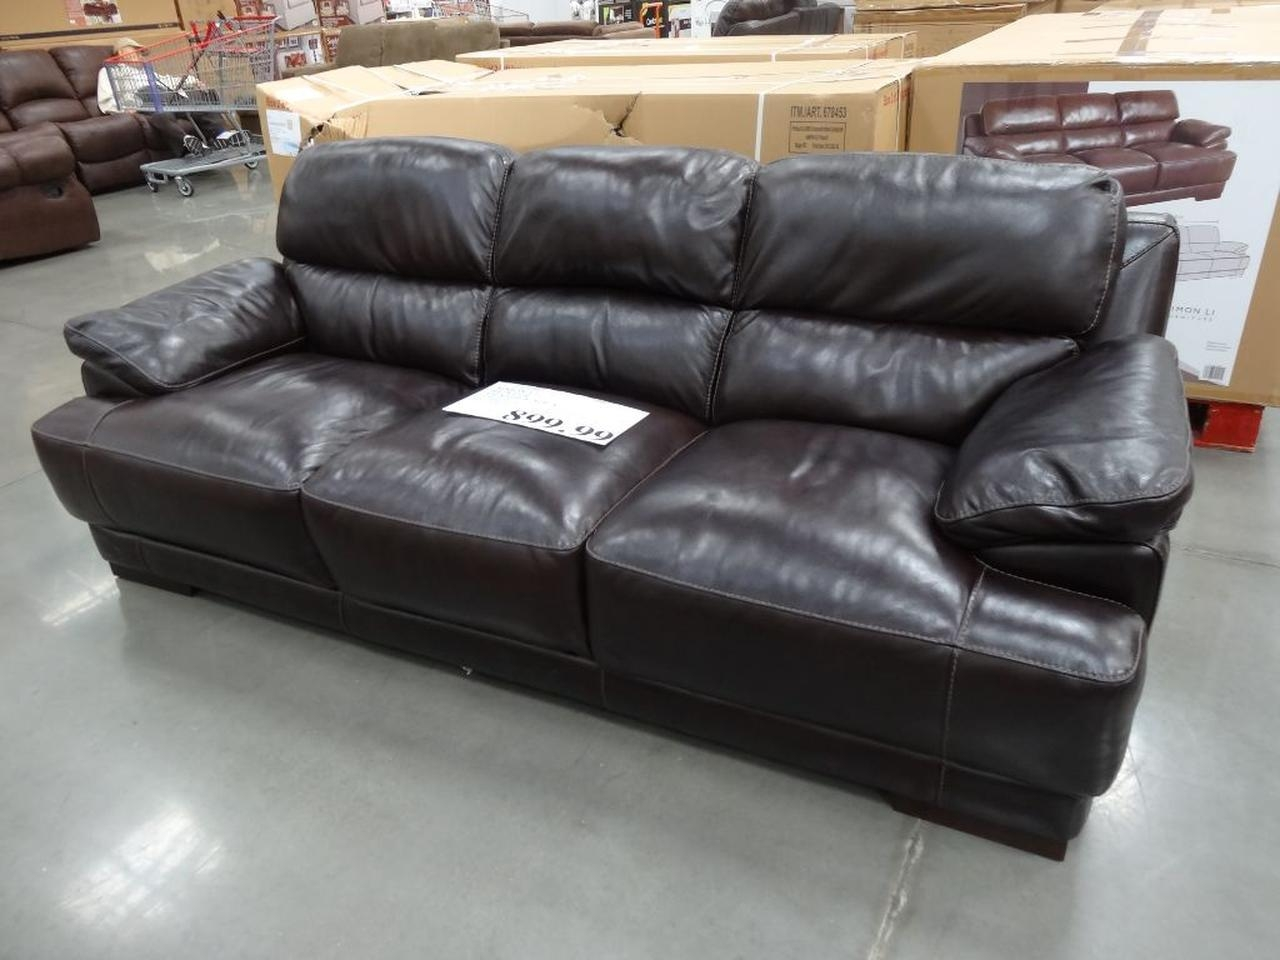 costco euro style sleeper sofa milan rounded set 20 43 choices of lounger beds ideas